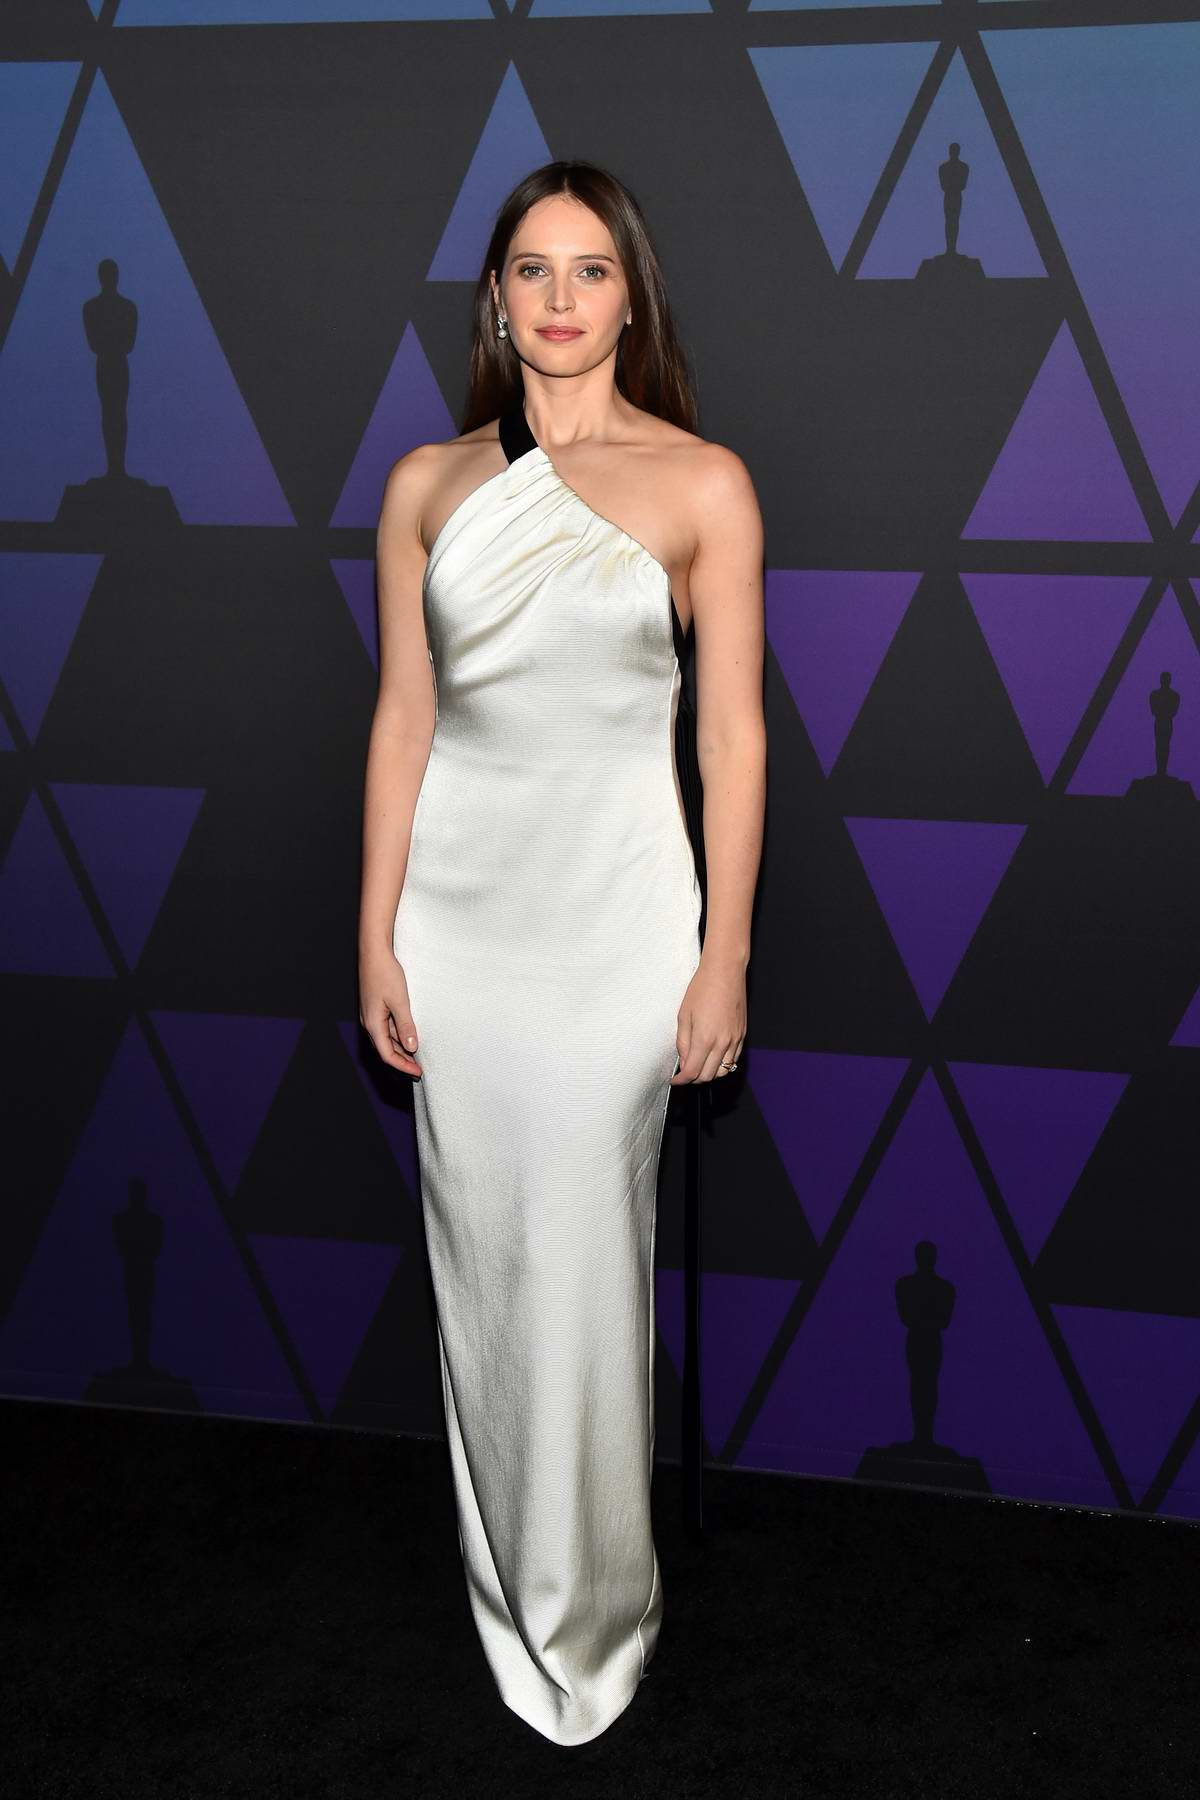 Felicity Jones attends the 10th Annual Governors Awards at the Academy Of Motion Picture Arts And Sciences' in Hollywood, California